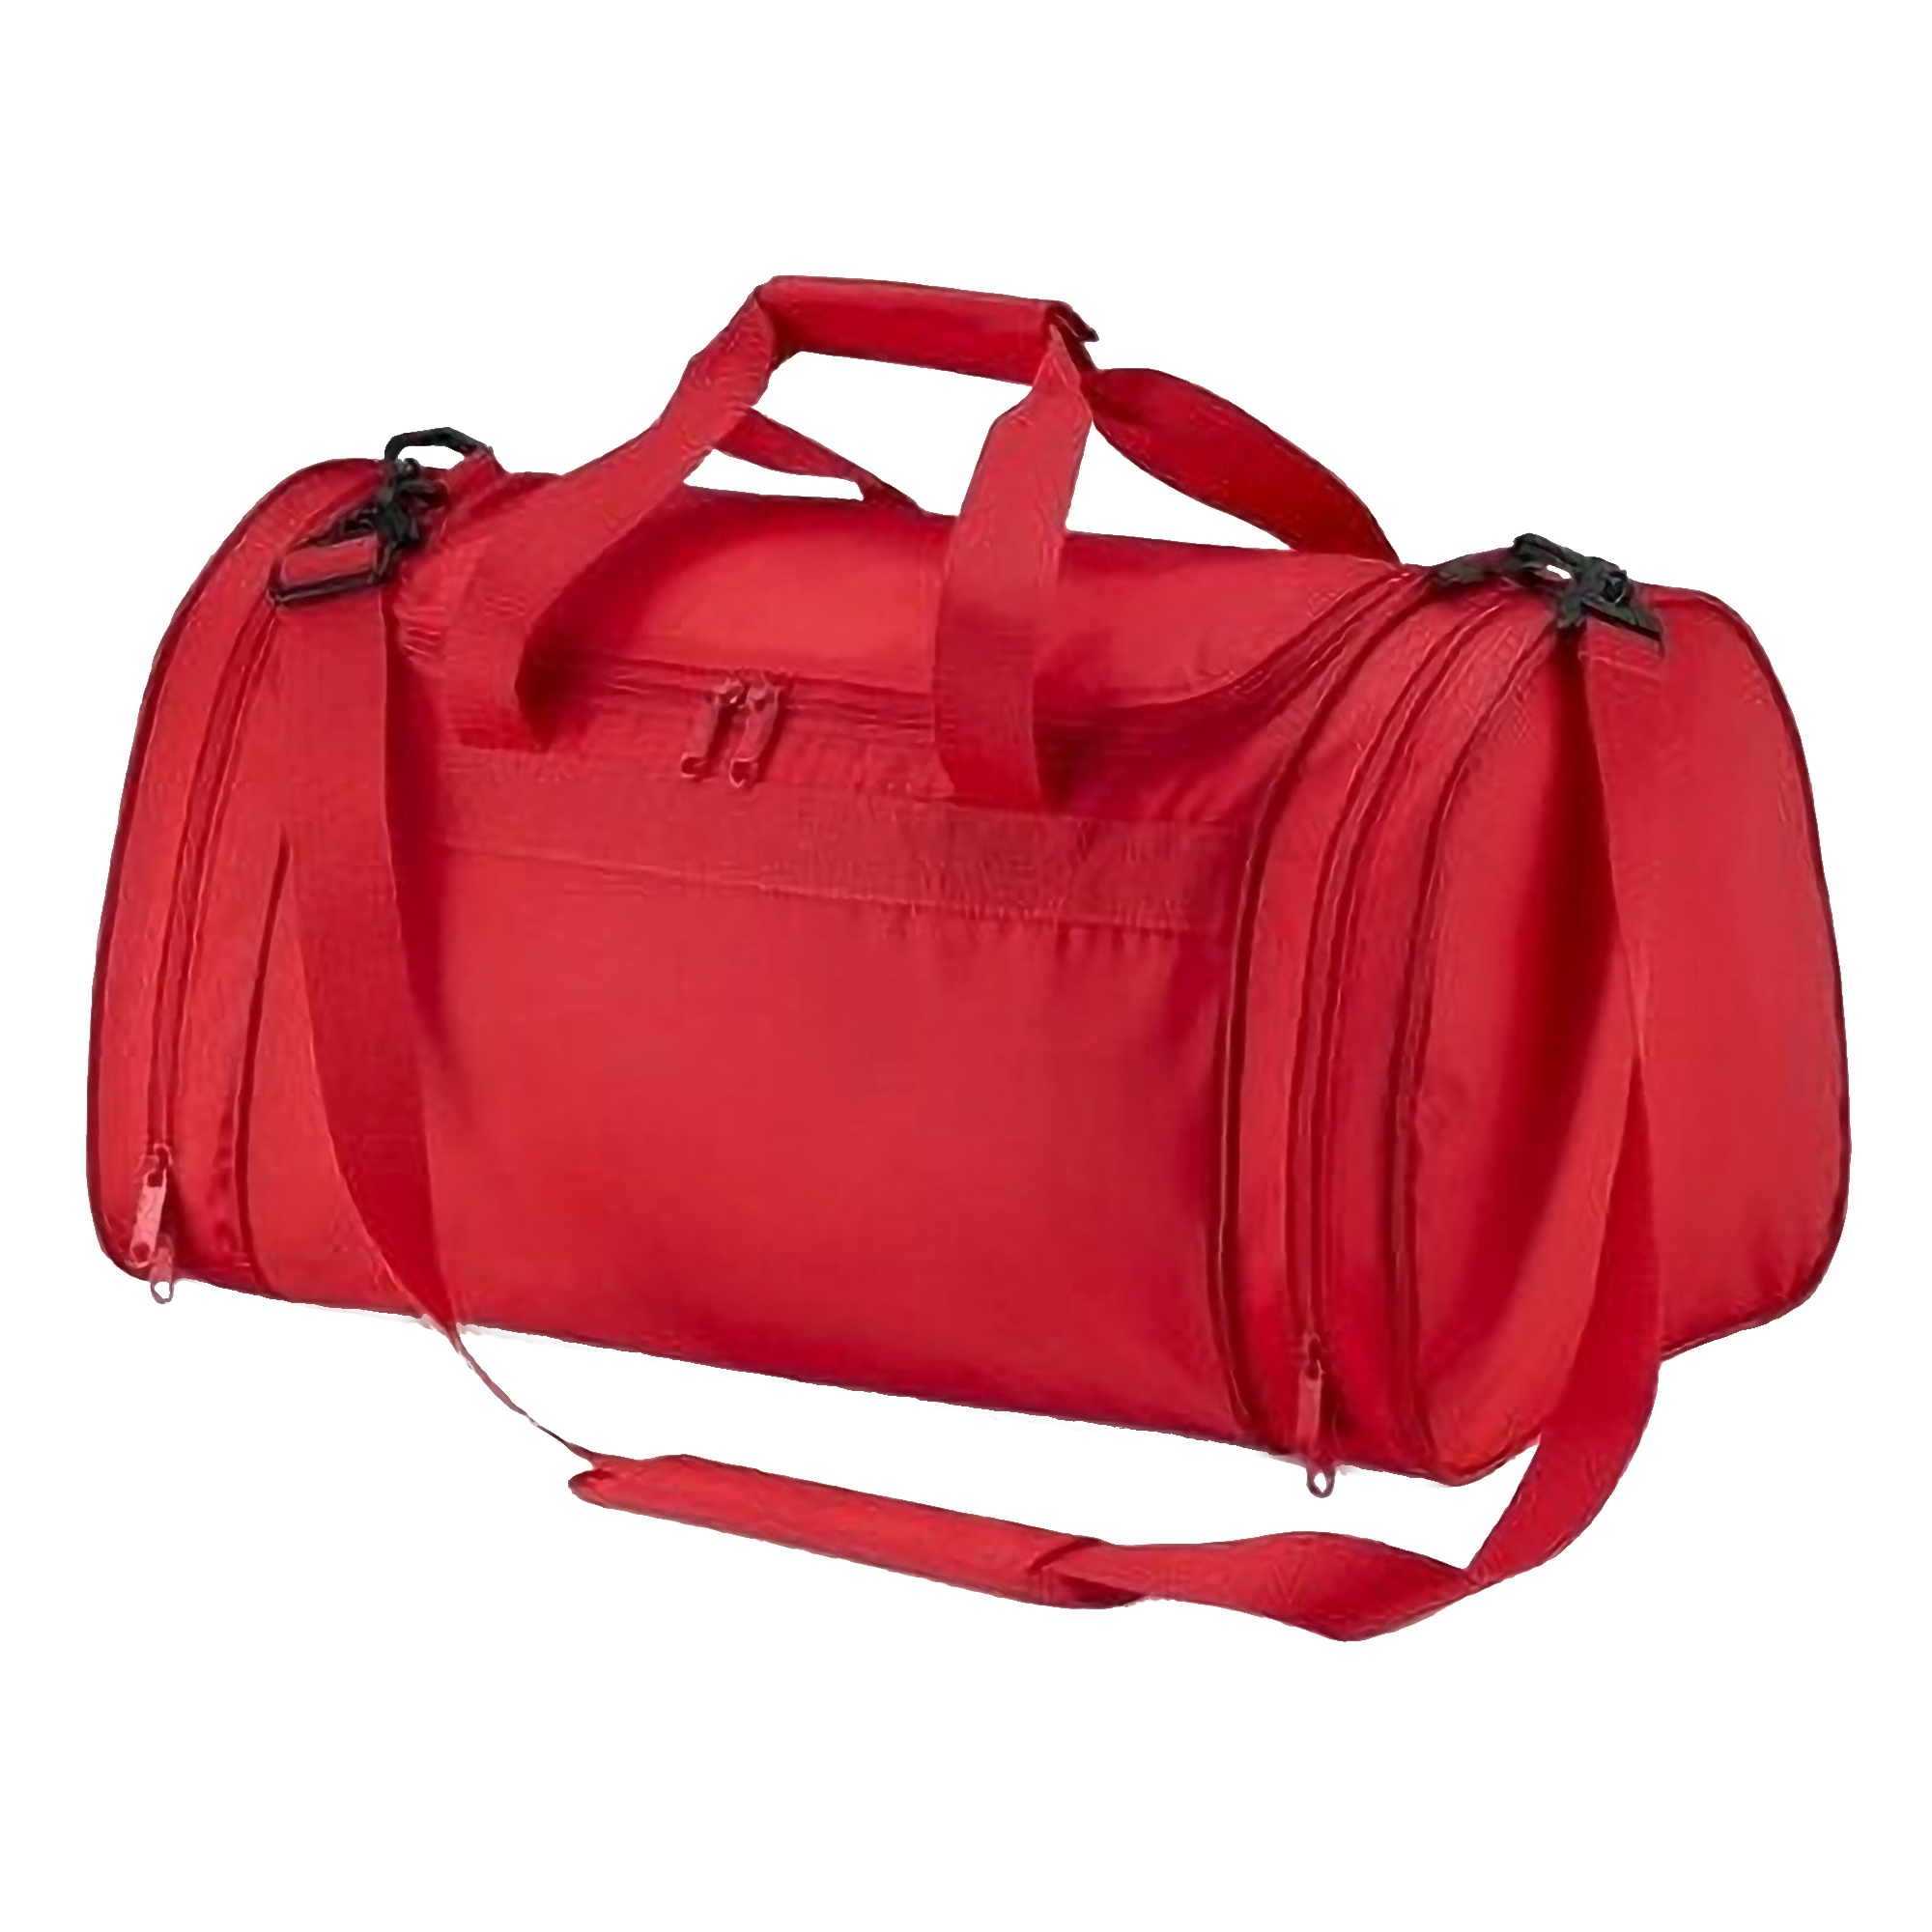 Quadra Sports Holdall Duffle Bag - 32 Litres (Pack of 2) (One Size) (Bright Red)